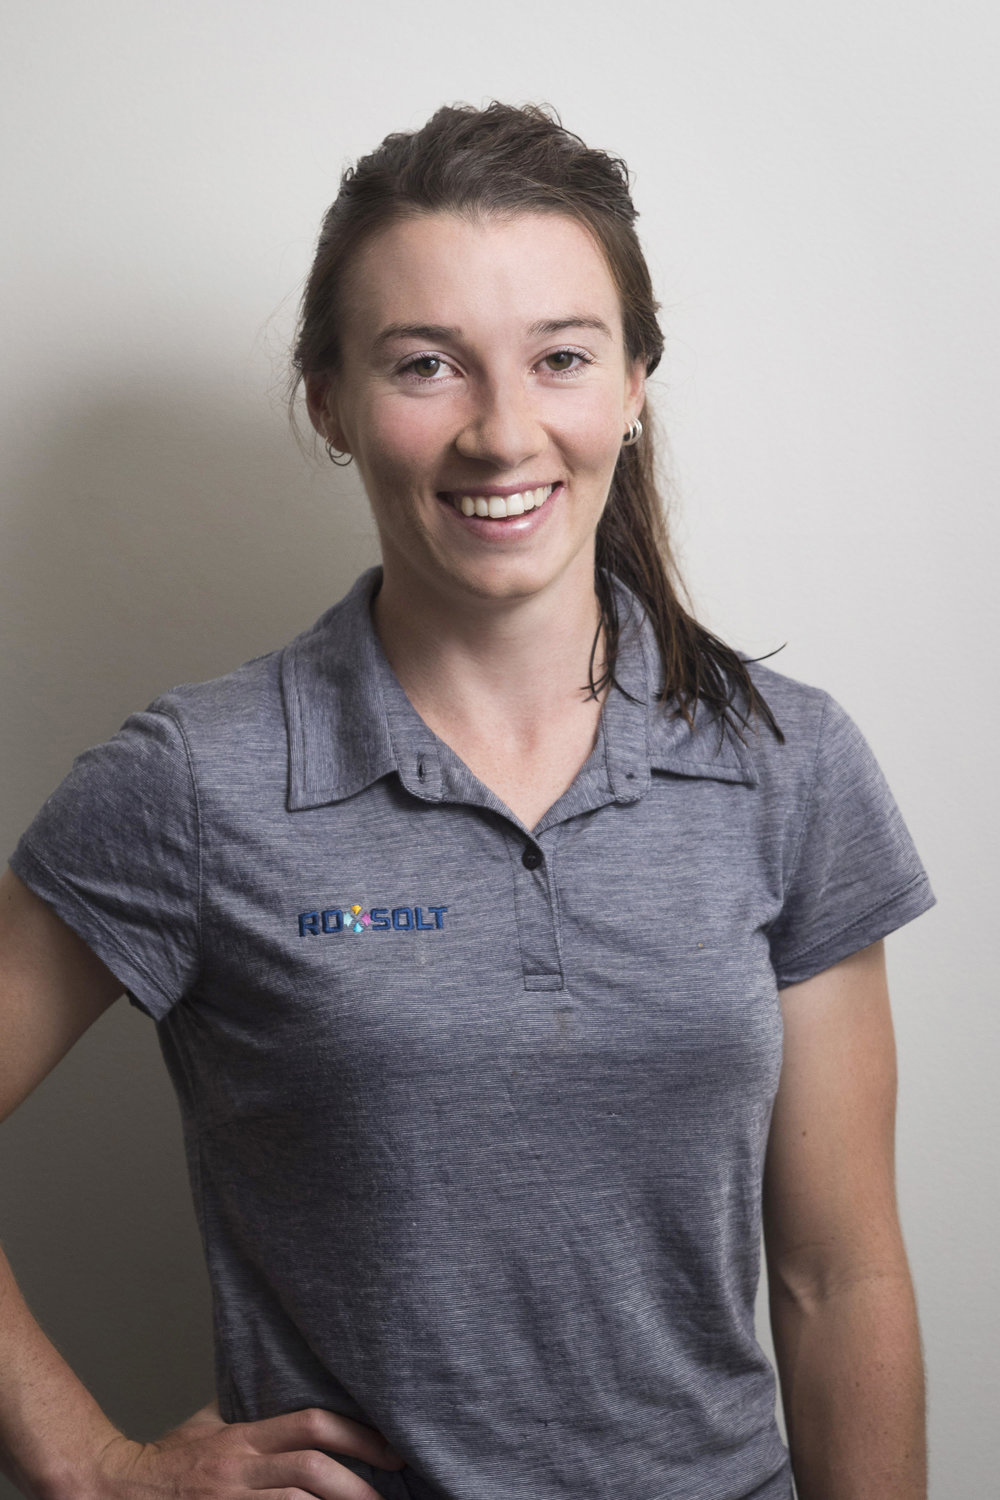 @sharlottelucas - Nickname: RocketTop Results: 2018 Oceania Road Champion, 4th 2018 Commonwealth Games Womens Cycling Road Race, 2nd 2018 New Zealand National Road Championships, 3rd 2018 Oceania Road Championships - ITT, 1st 2017 Stan Sjeika Launceston Cycling Classic, 3rd 2017 Oklahoma City ProAm Classic - Film Row Stage, 2nd 2015 New Zealand National Road Championships, 7th 2018 UCI 1.1 Cadel Evans Great Ocean Road RaceWhere did you grow up: Hokitika, NZFavourite food: ChocolateType of rider: RouleurFavourite place to ride: at home in HokitikaWhat do you hope to achieve cycling this year/ what are you looking forward to the most about racing in the USA: Win races is this years aim! USA Criterium racing is competitive and fun